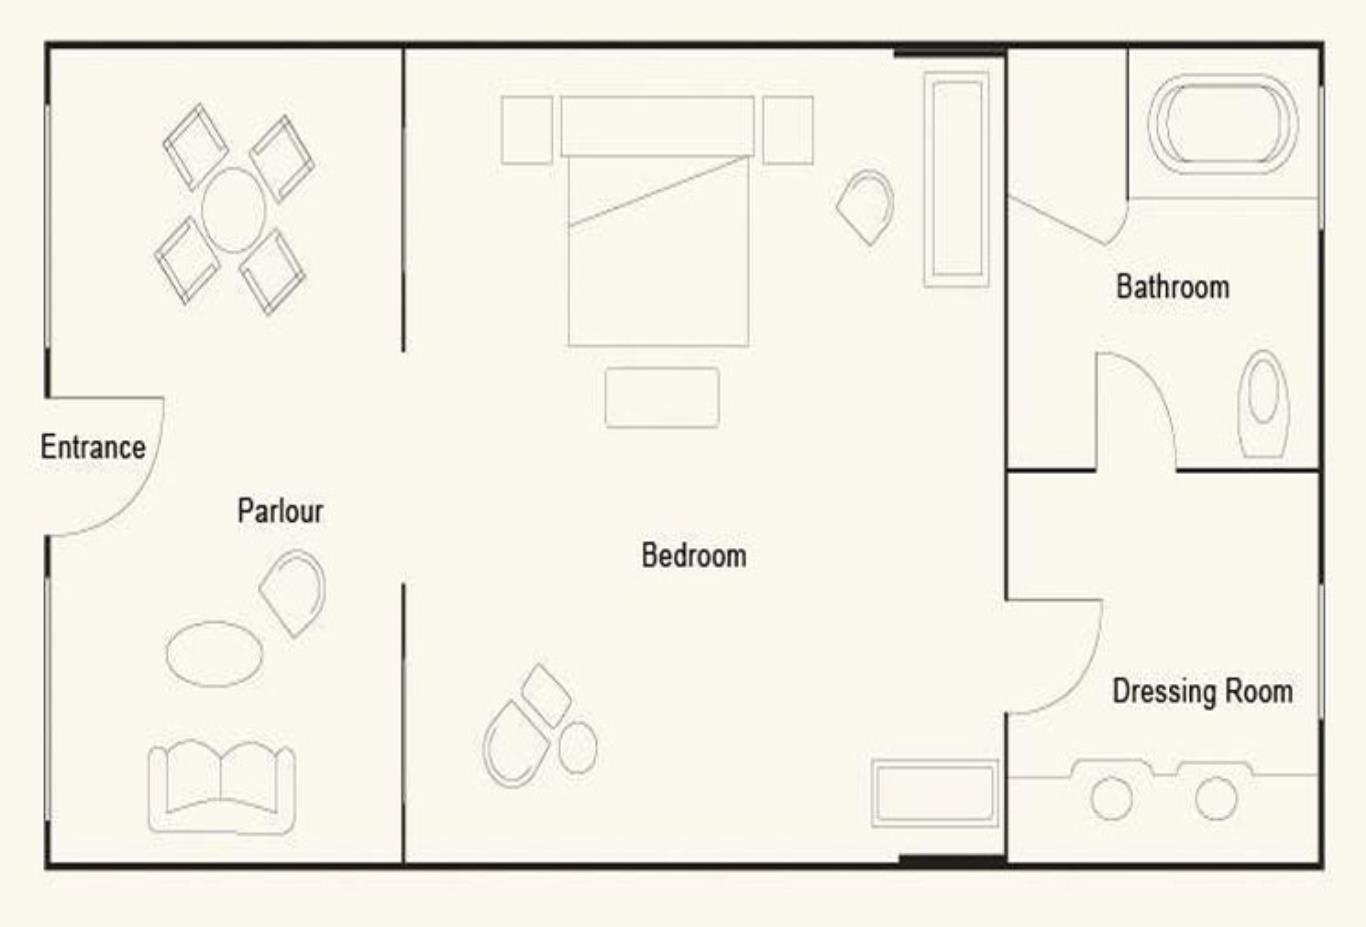 Floorplan of Courtyard Suite